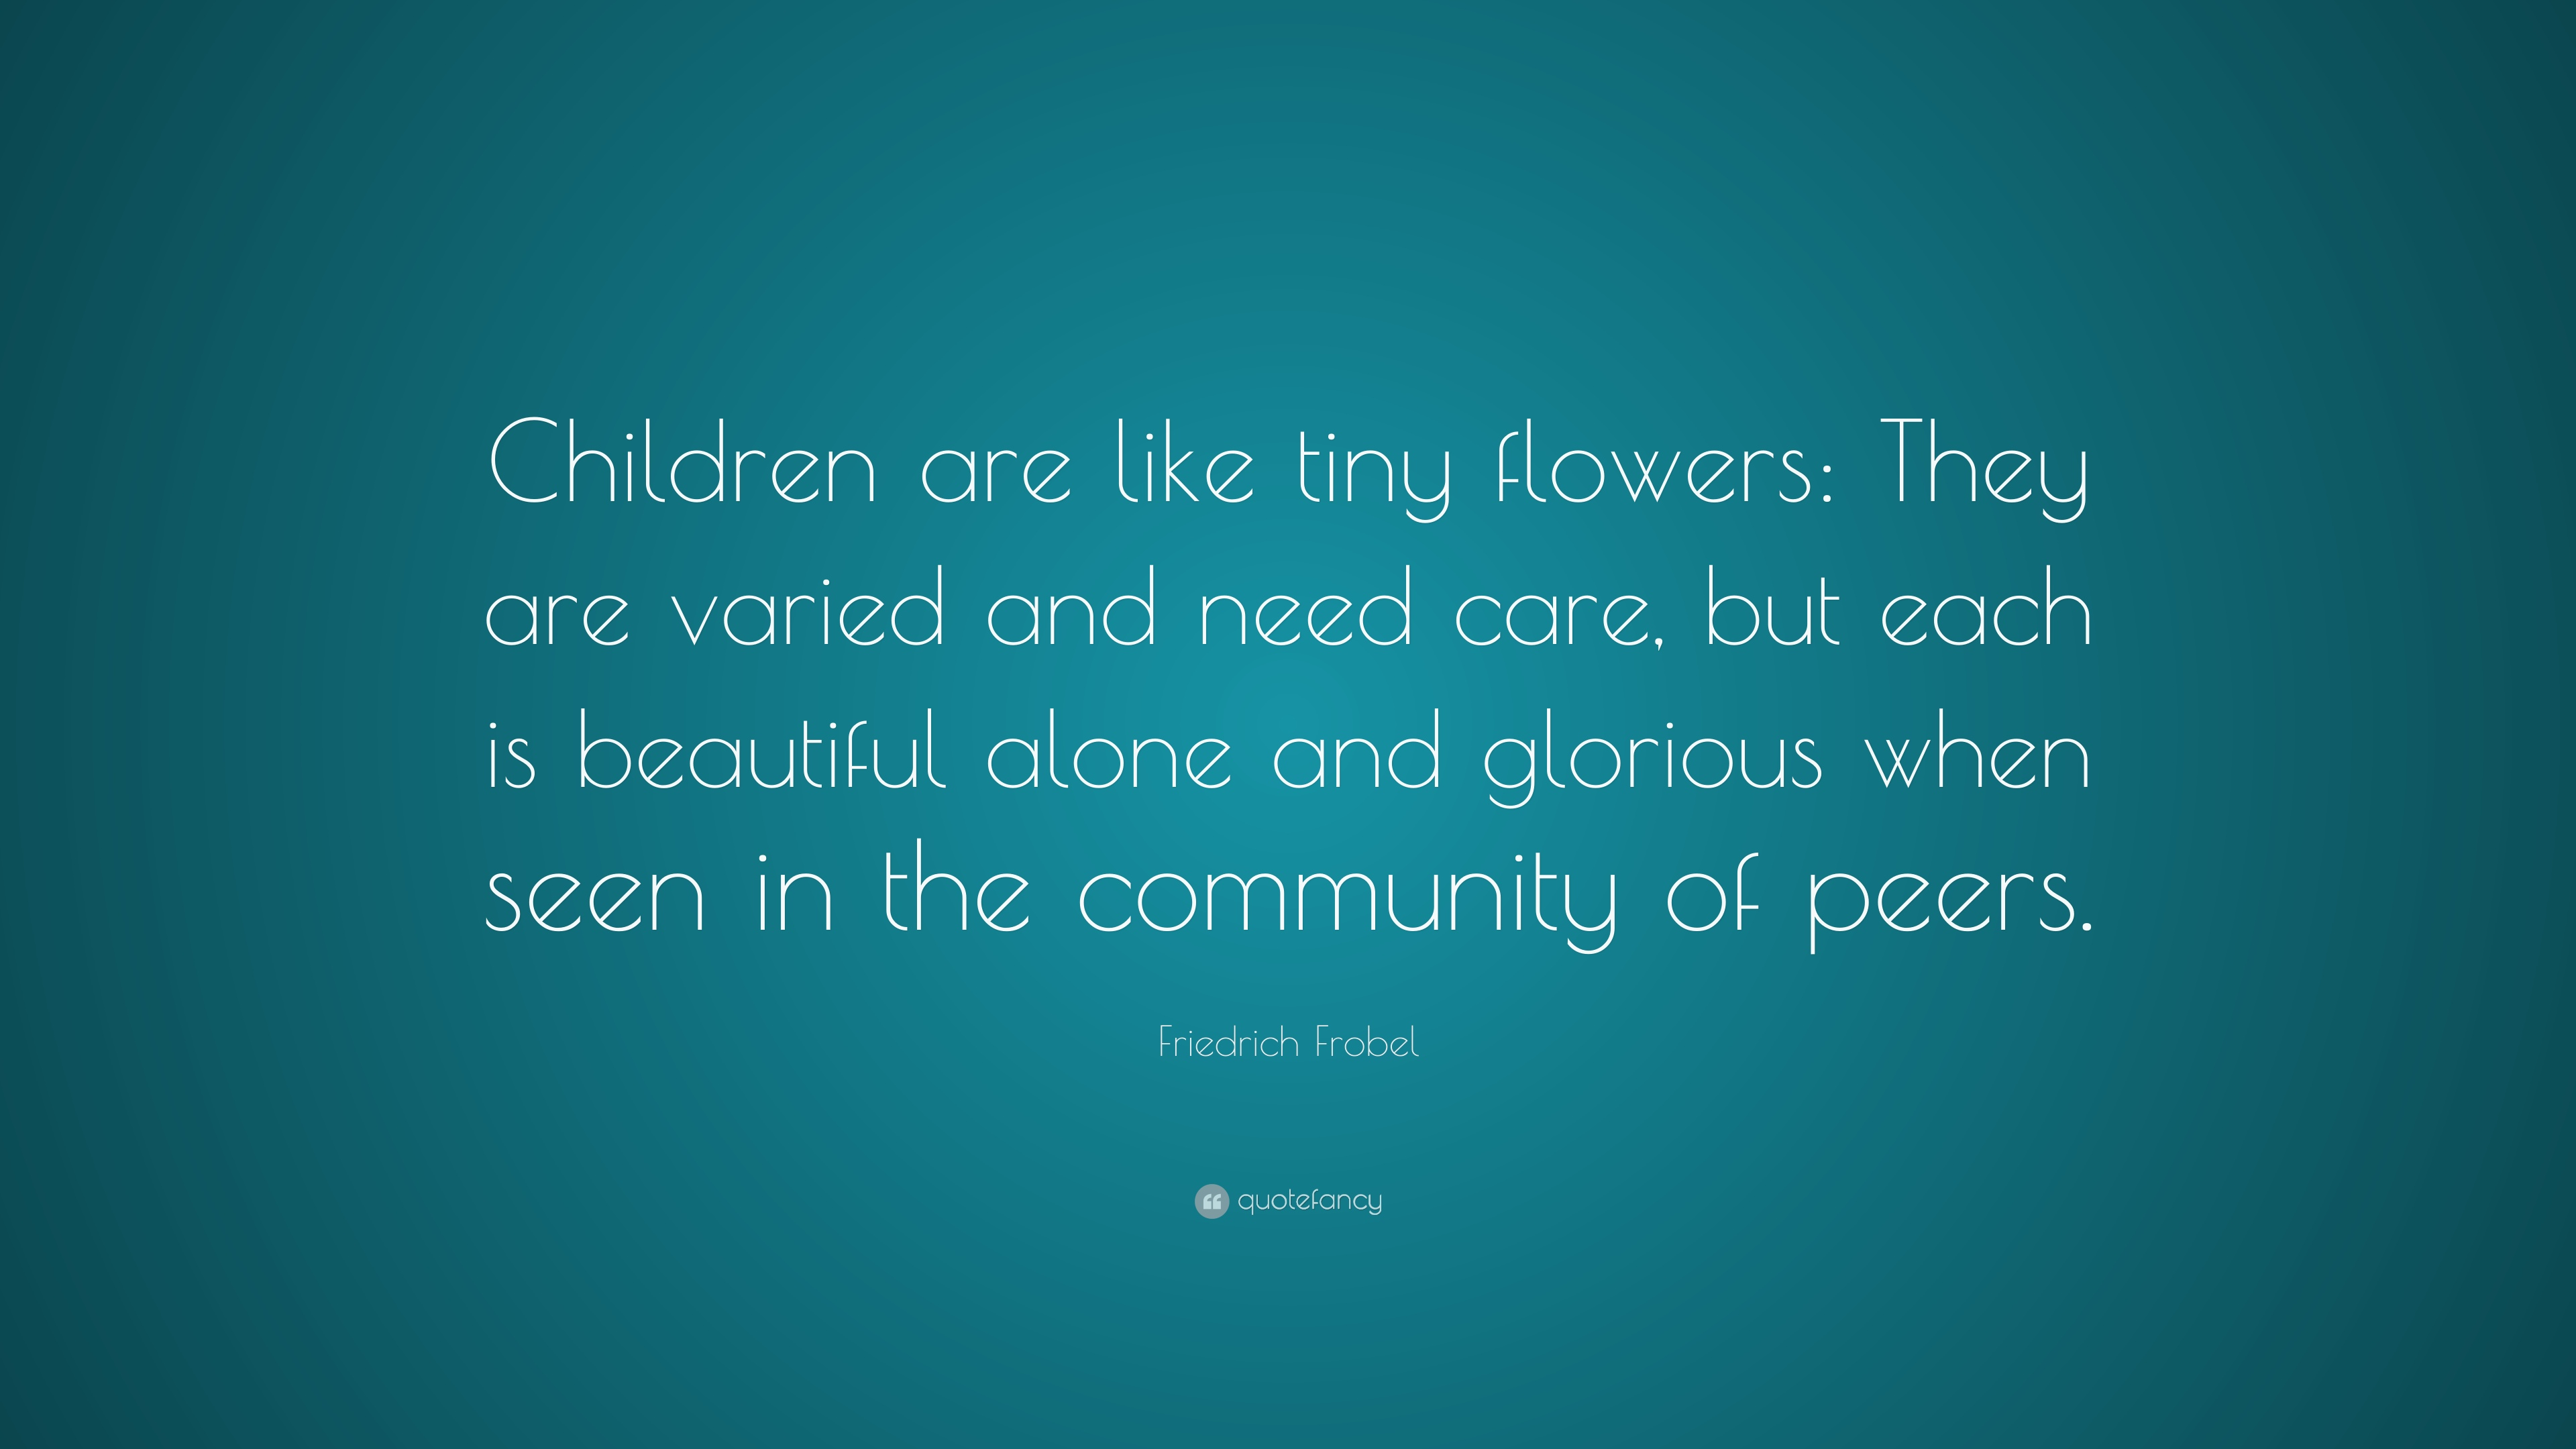 Friedrich Frobel Quote Children Are Like Tiny Flowers They Varied And Need